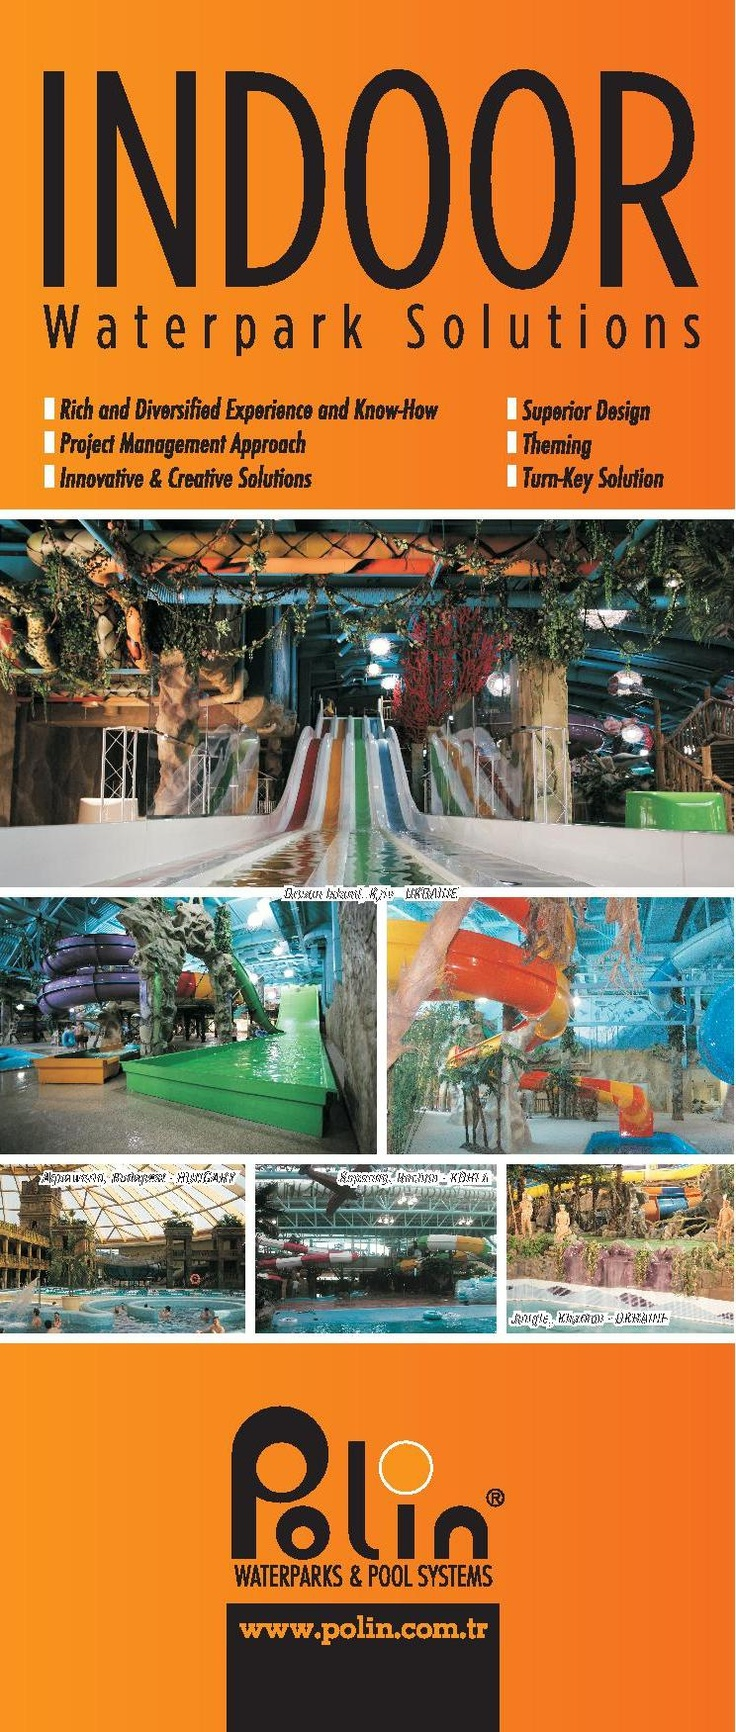 57 Best Images About Indoor Water Parks On Pinterest